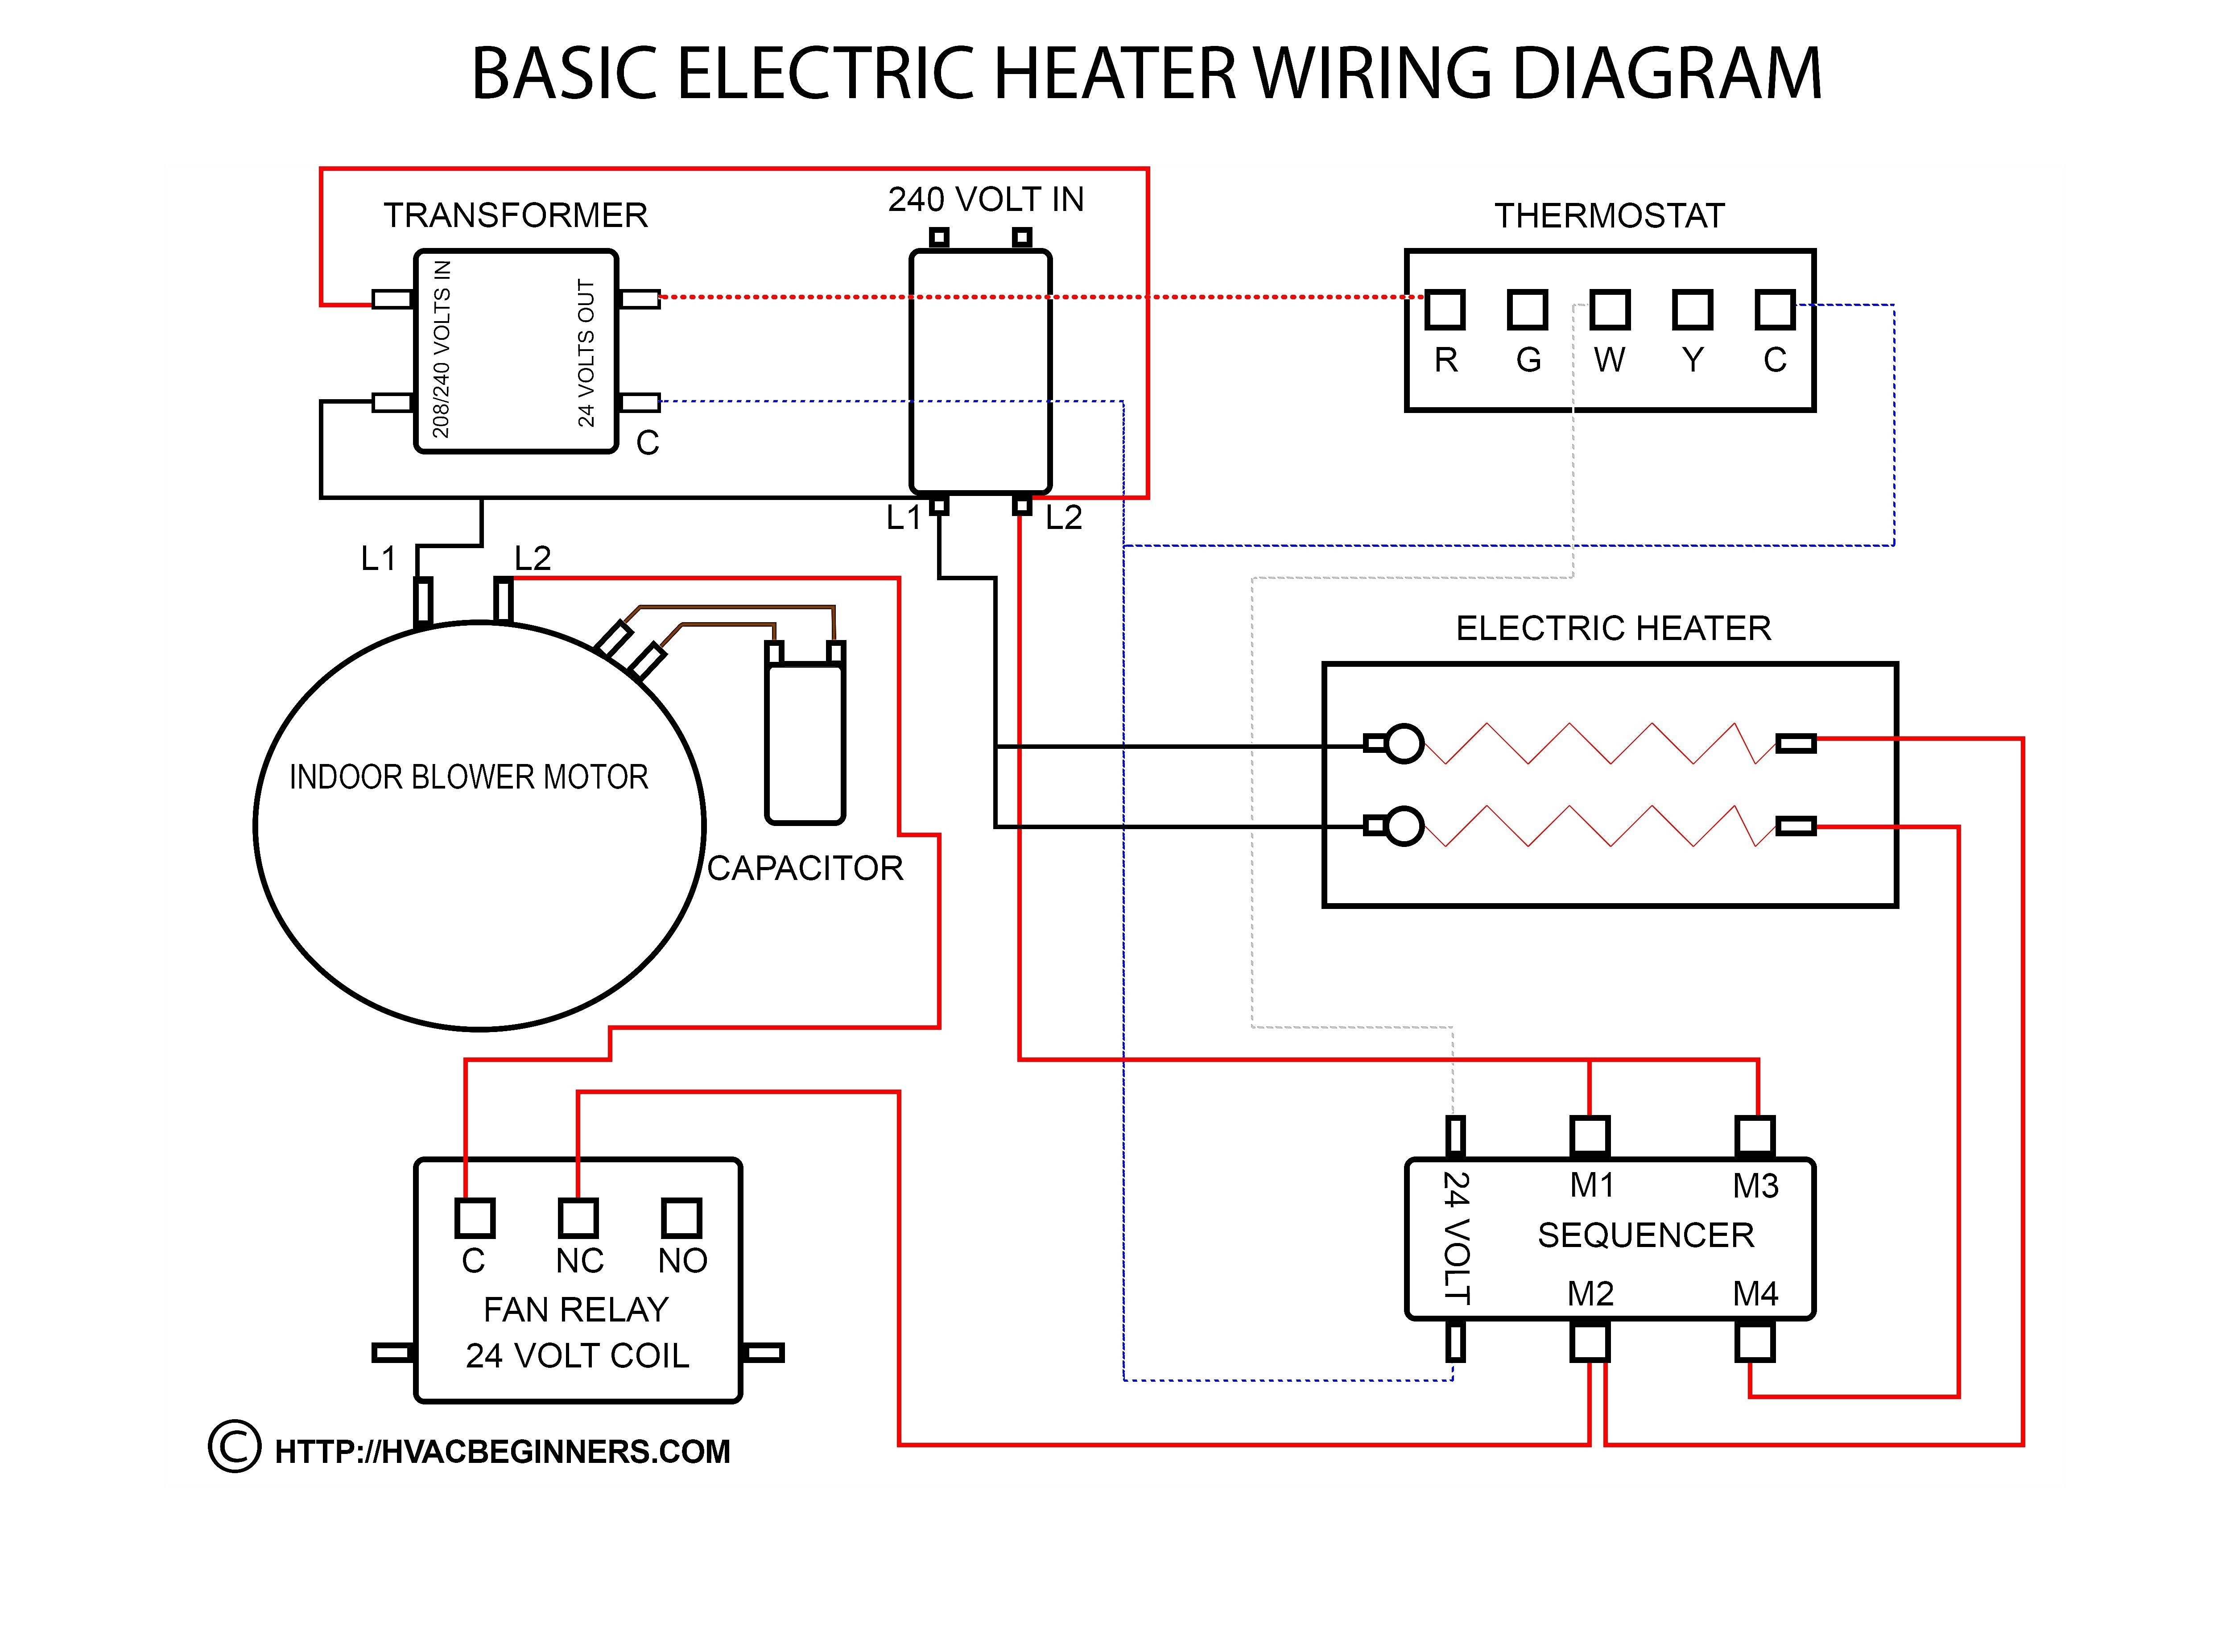 Water Heater Wiring Diagram V on fantastic fan wiring diagram, electric hot water tank wiring diagram, ge water heater diagram, electric water heater circuit diagram, electric hot water heater diagram, 240 volt wiring diagram, electric water heater thermostat diagram, light switch wiring diagram, electrical outlet wiring diagram, 220v sub panel diagram,